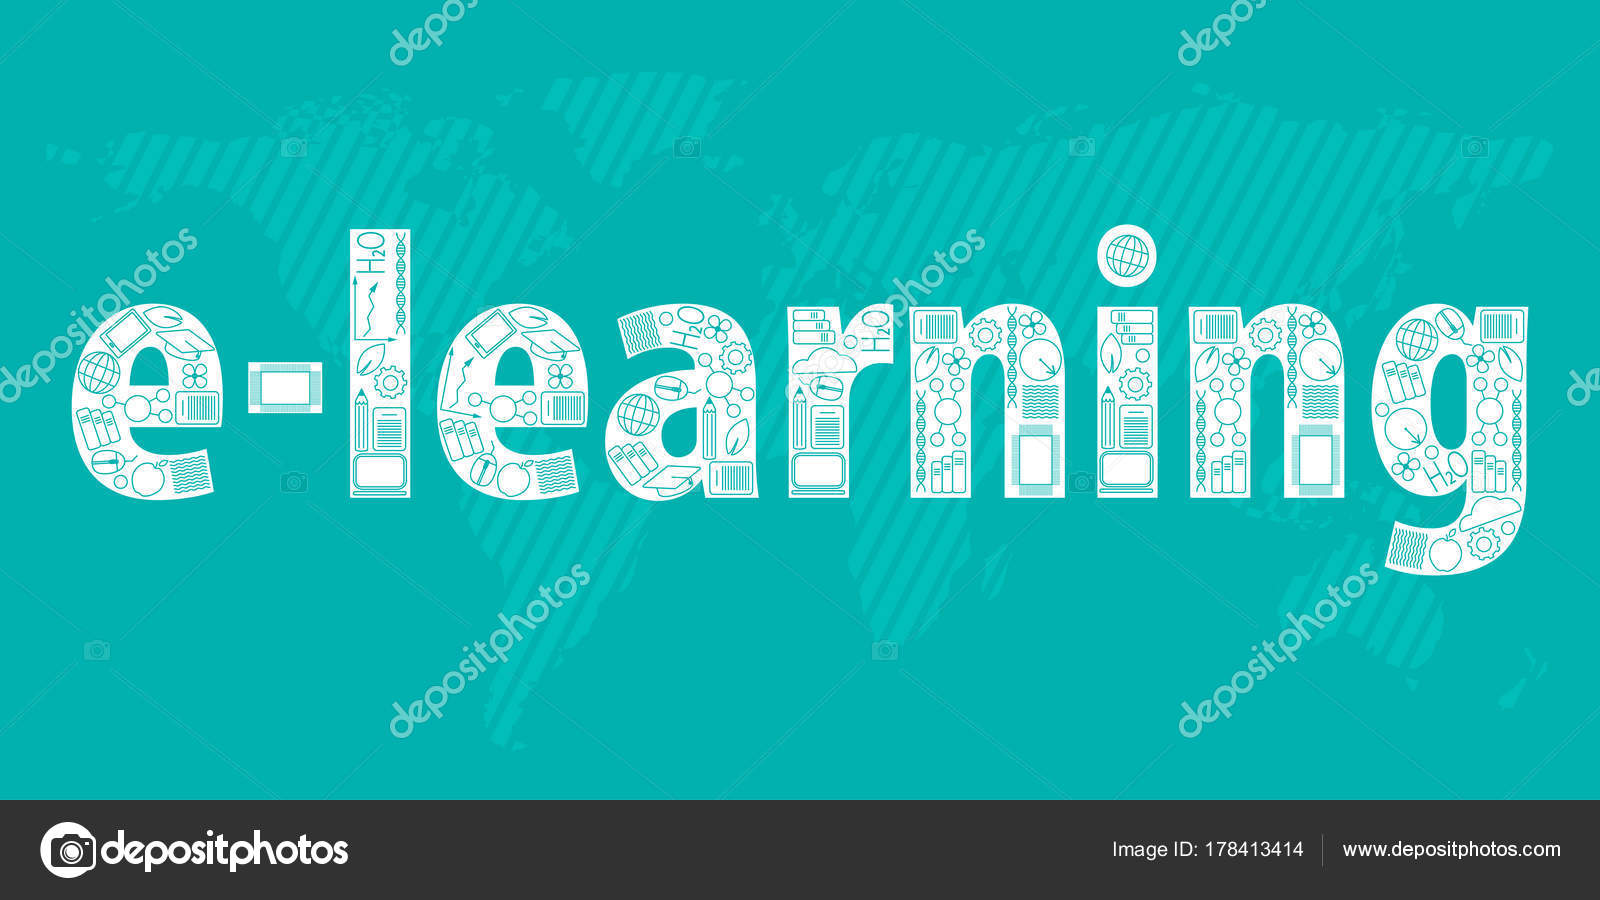 Concept Of Remote Learning E Learning Built From Online Education Icons On Light Blue Map Of The World Background Stock Vector C Karinanh 178413414